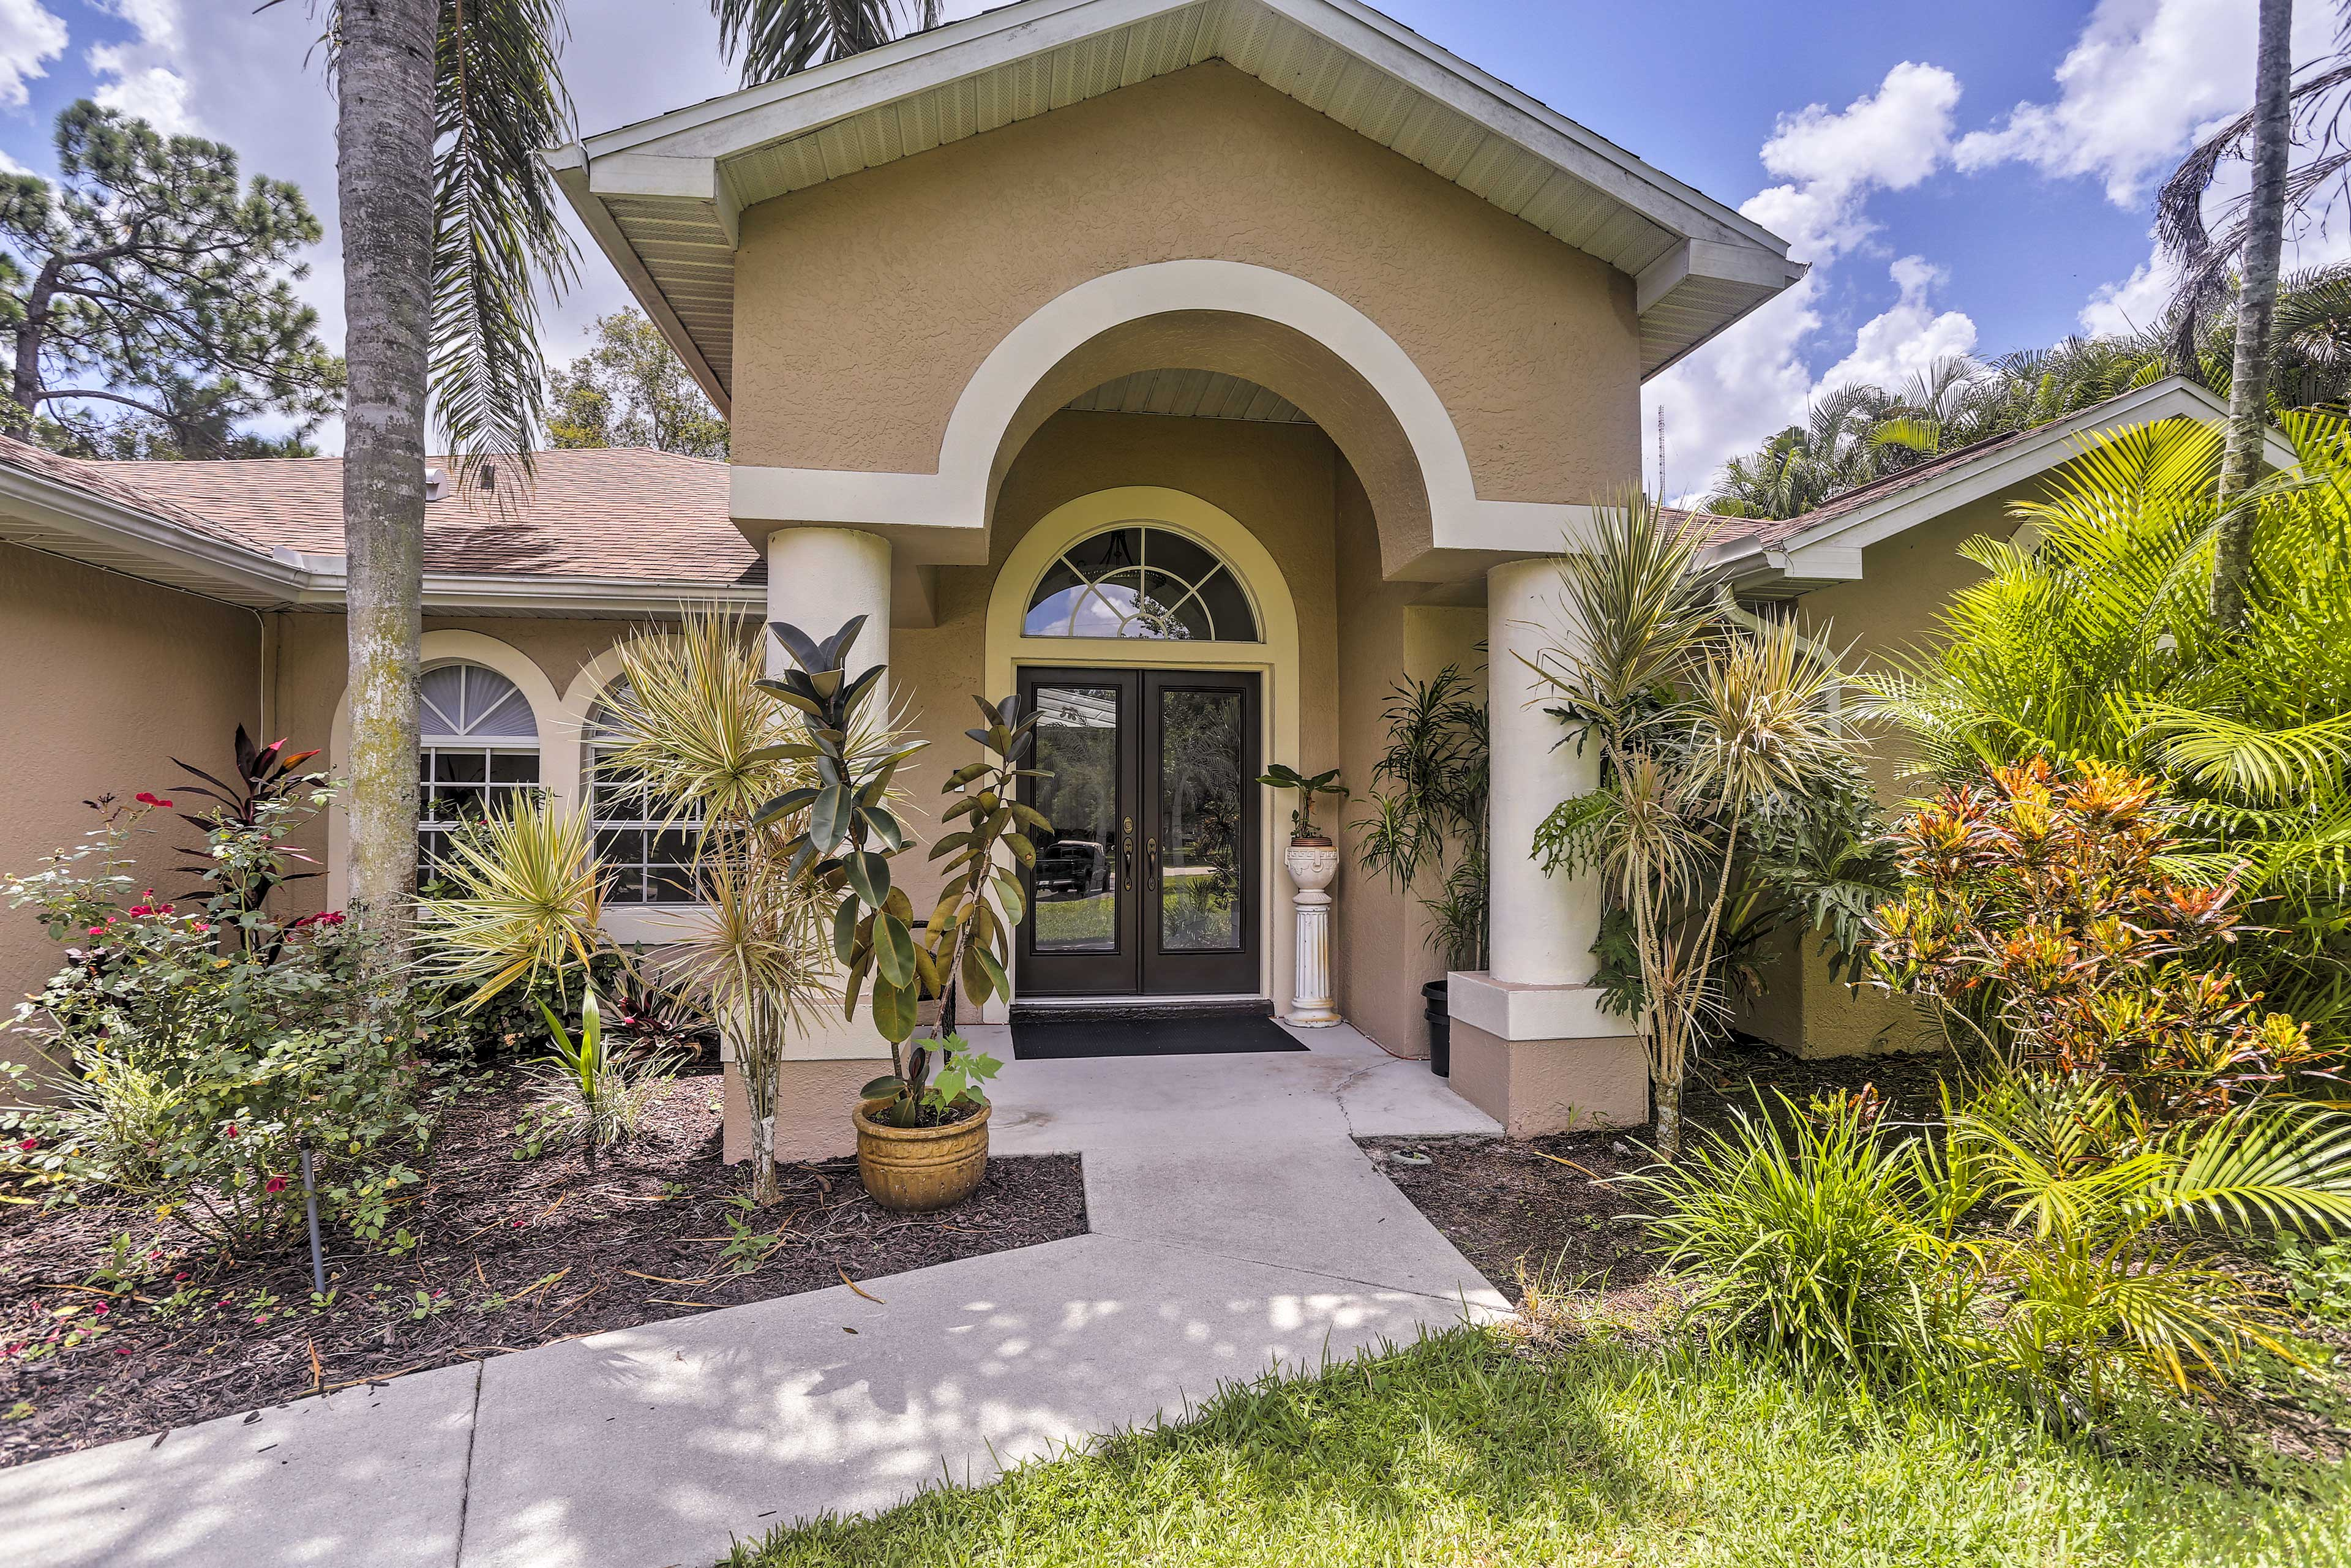 Fort Myers Vacation Rental | 4BD | 3BA | 2,730 Sq Ft | No Steps to Access